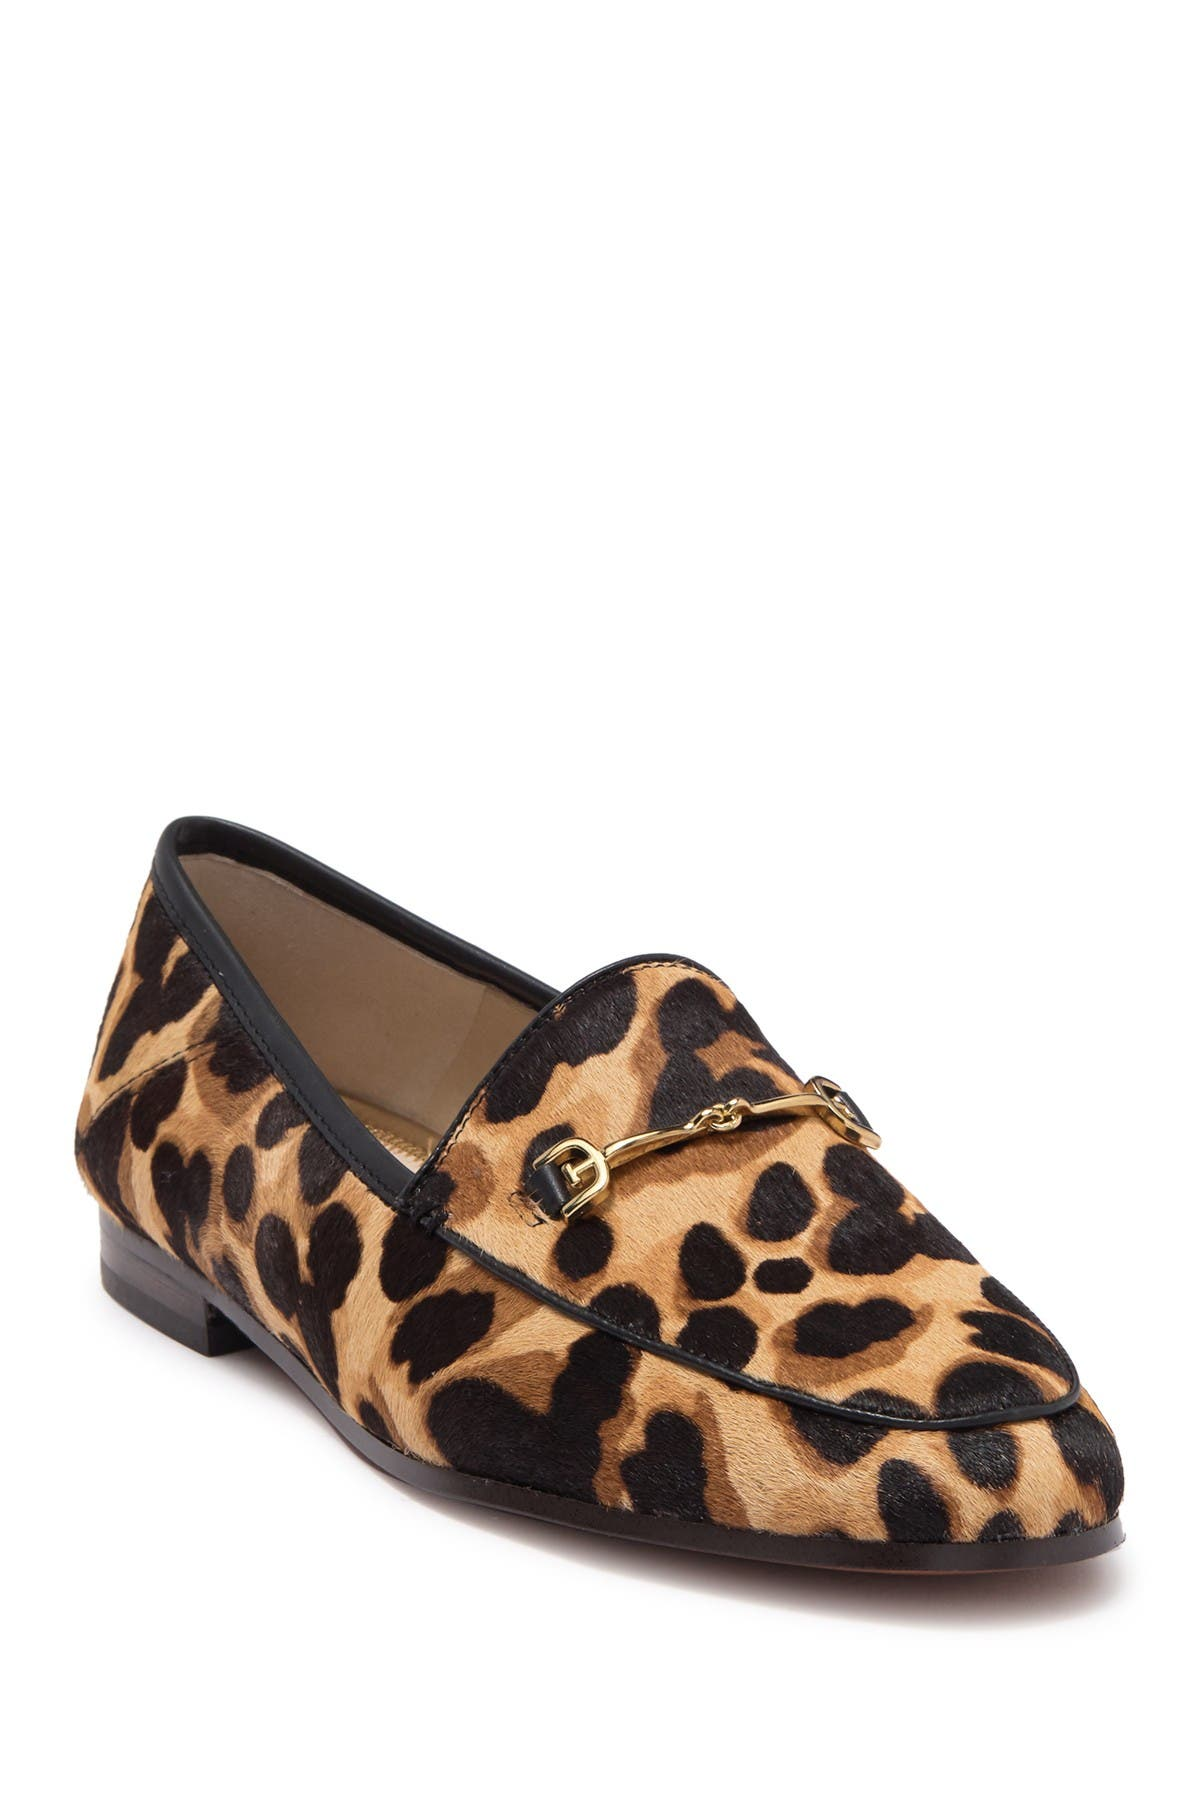 Image of Sam Edelman Loraine Leopard Print Loafer